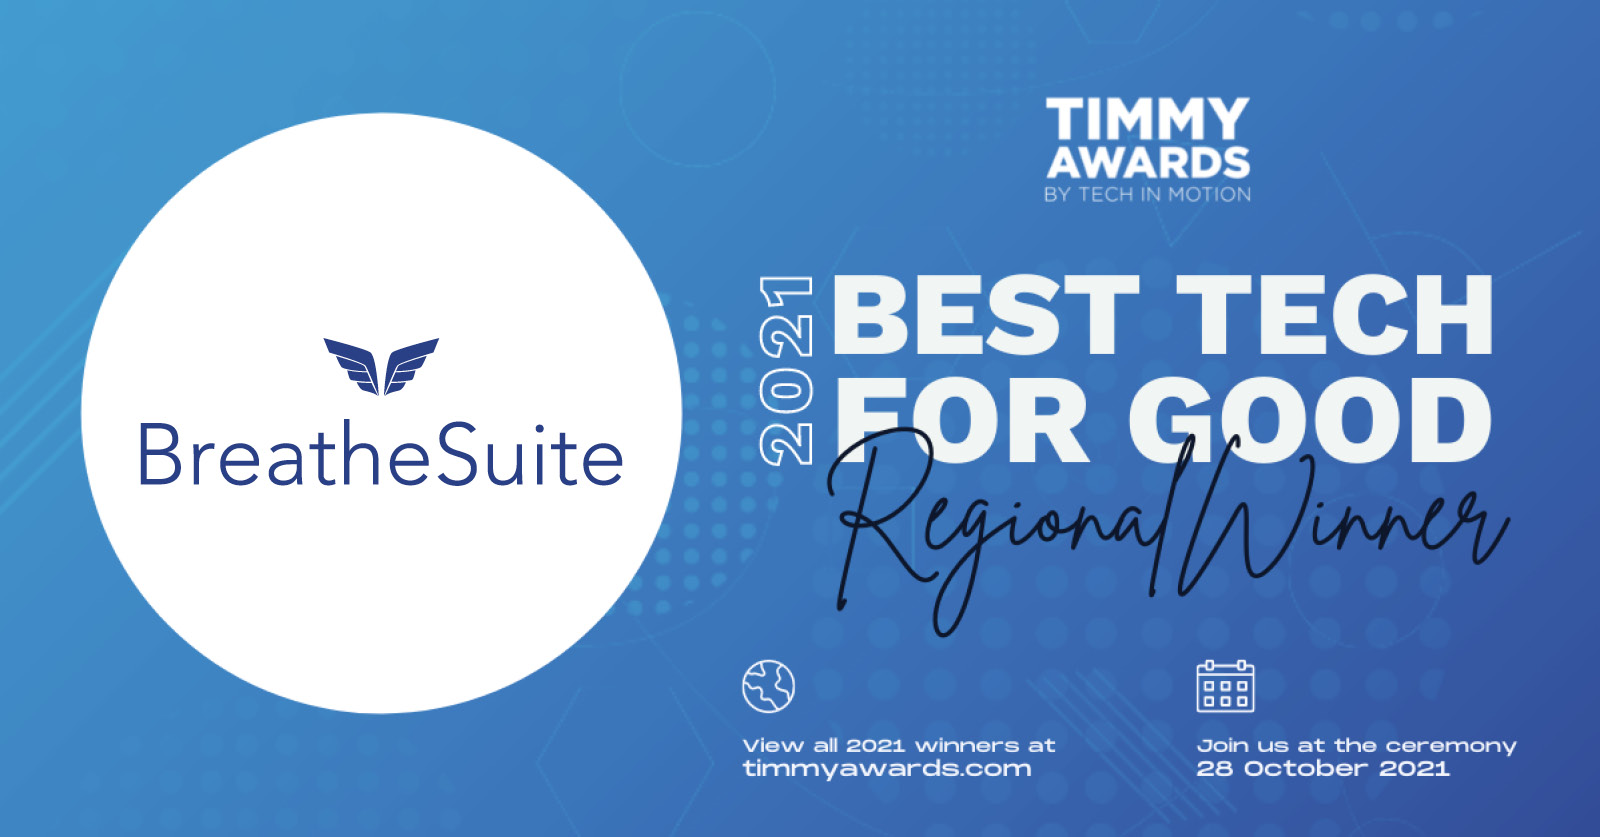 Timmy Awards Announces BreatheSuite As 2021 Tech for Good Regional Winner, Progresses to Final North American Round